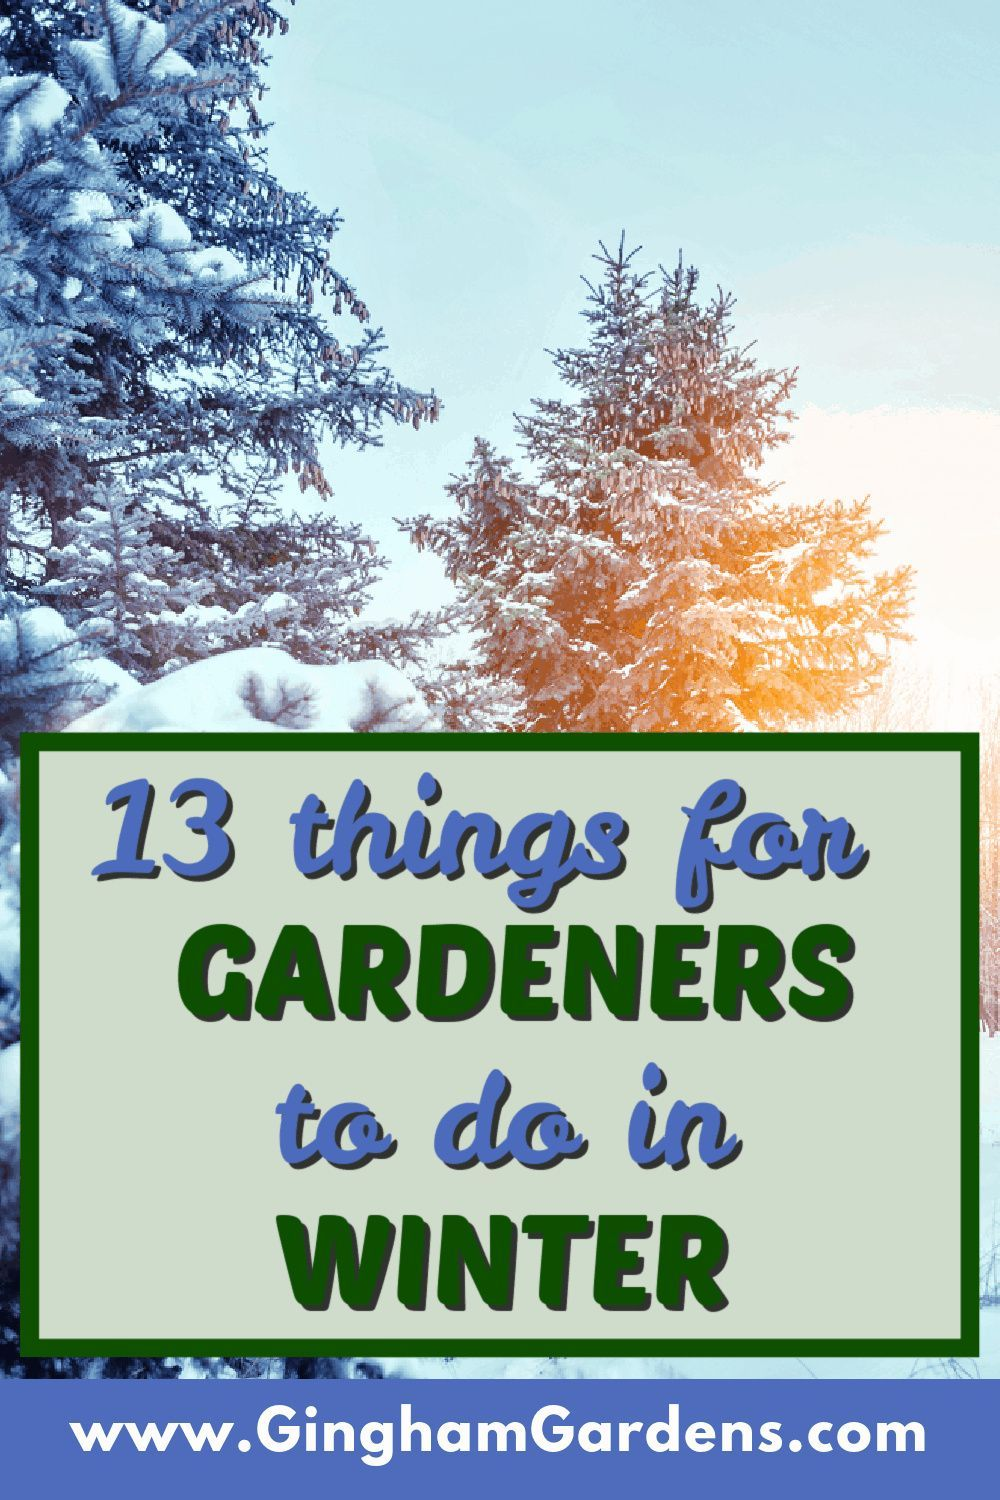 97bcbc73d7c37db626264ae1ff5c2de3 - What Can Gardeners Do In Winter